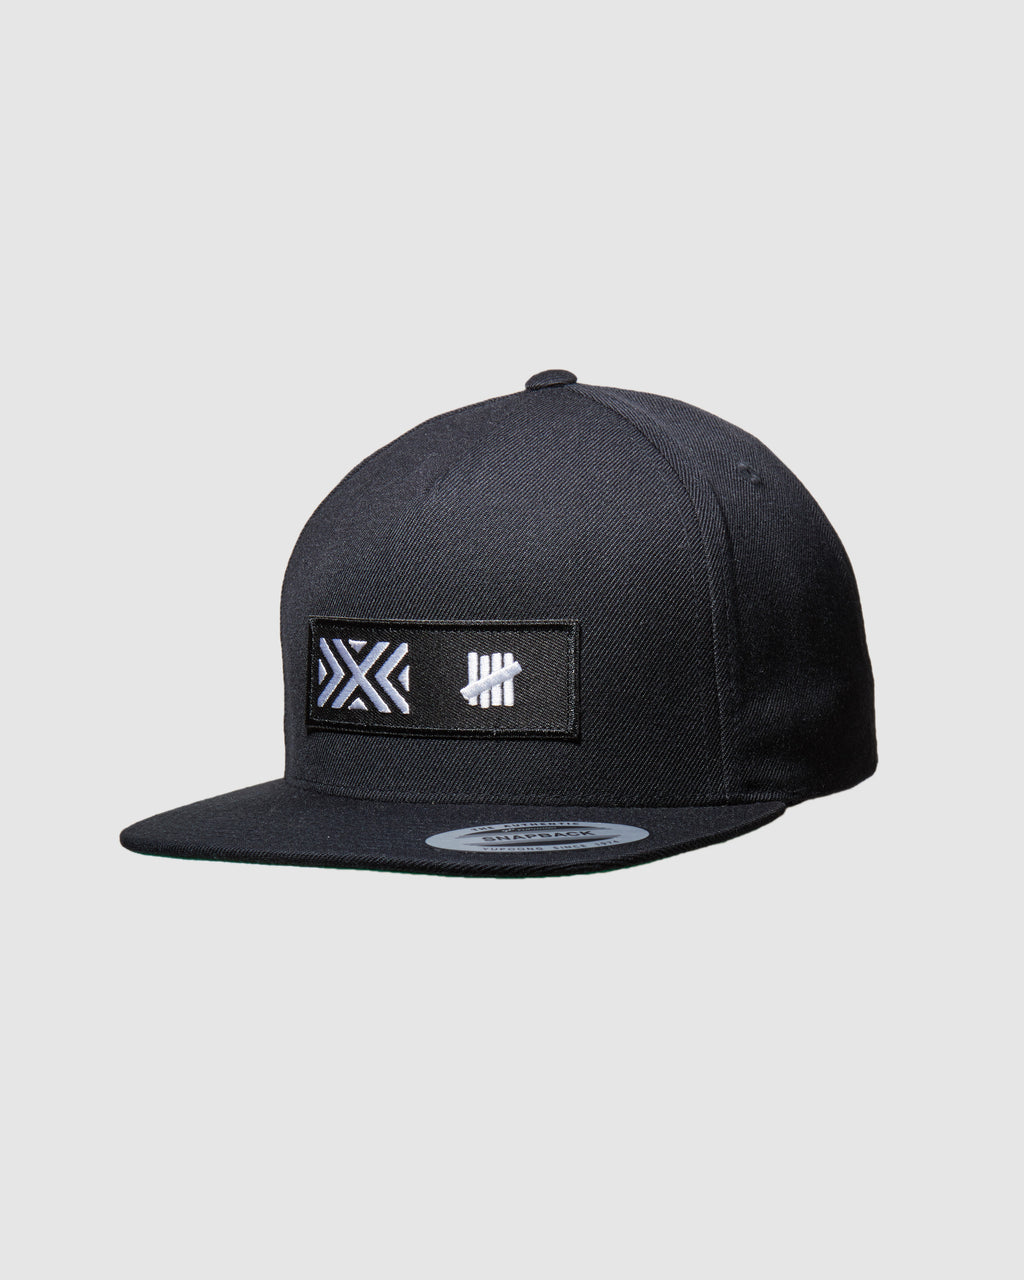 UNDEFEATED NYXL Hat (OSFM)